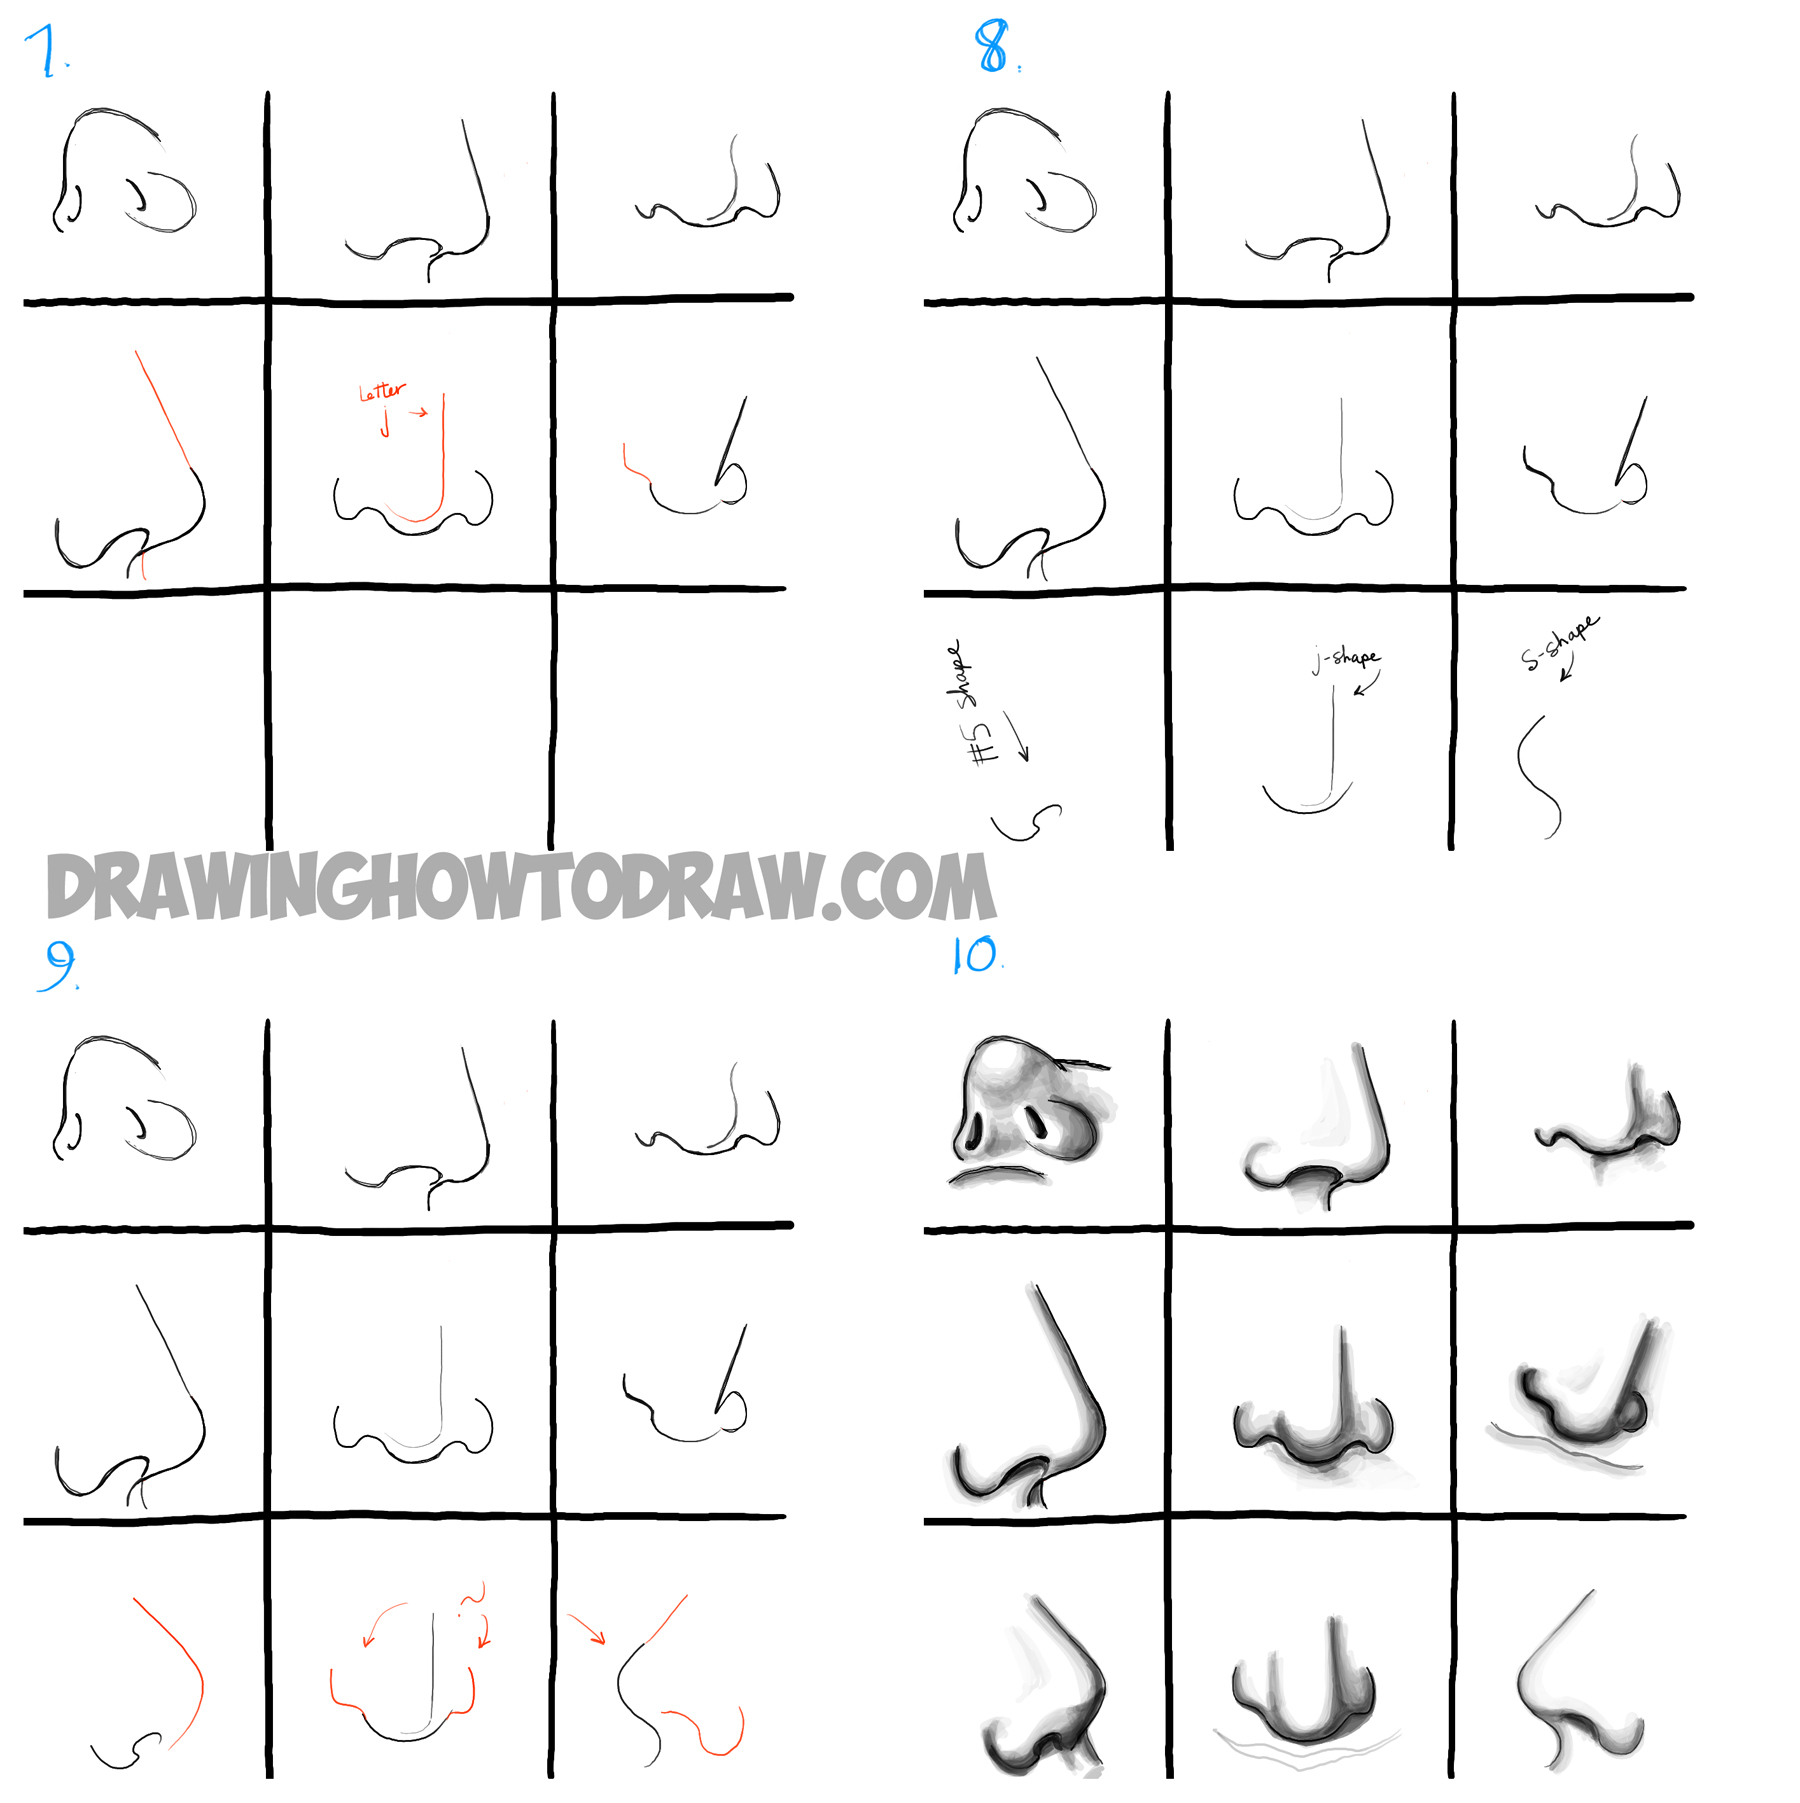 How To Draw Noses From All Different Angles And Positions